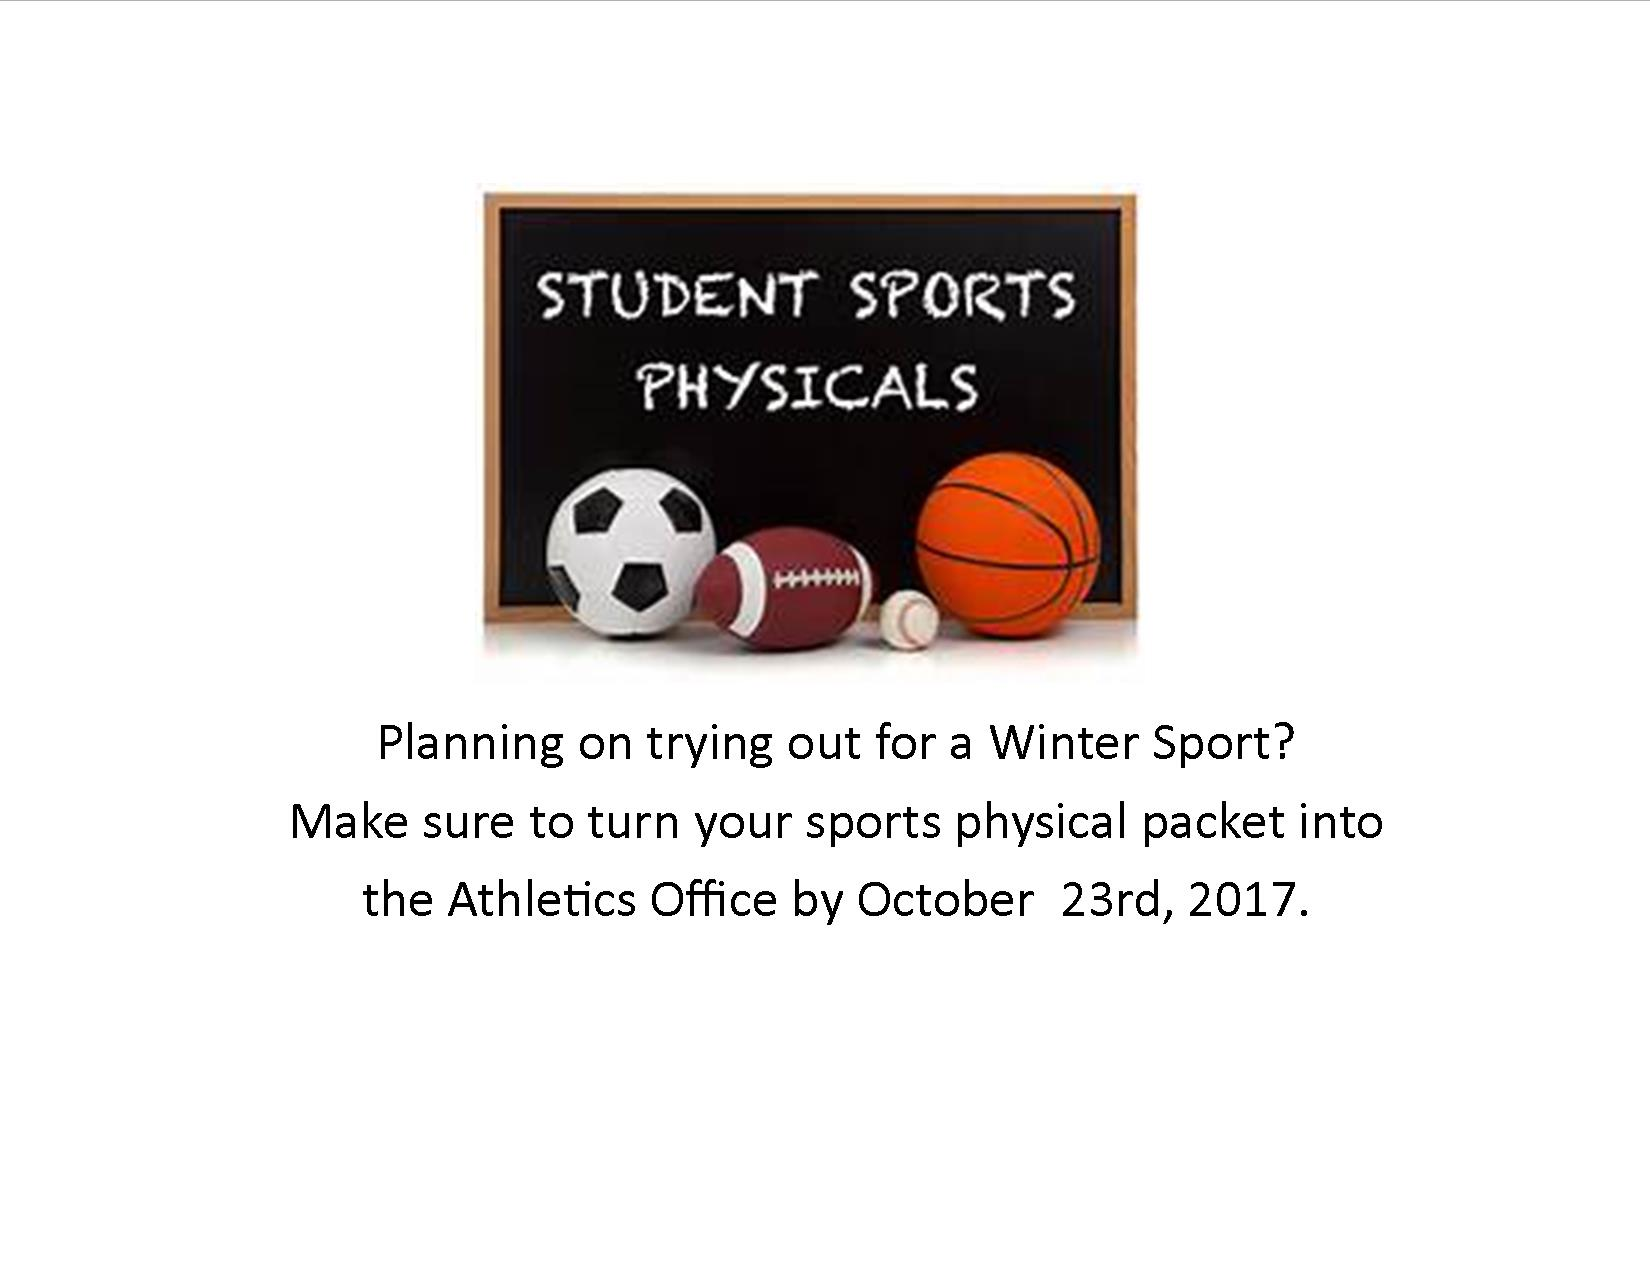 Winter Sports Physical Packets Due by October 23rd, 2017